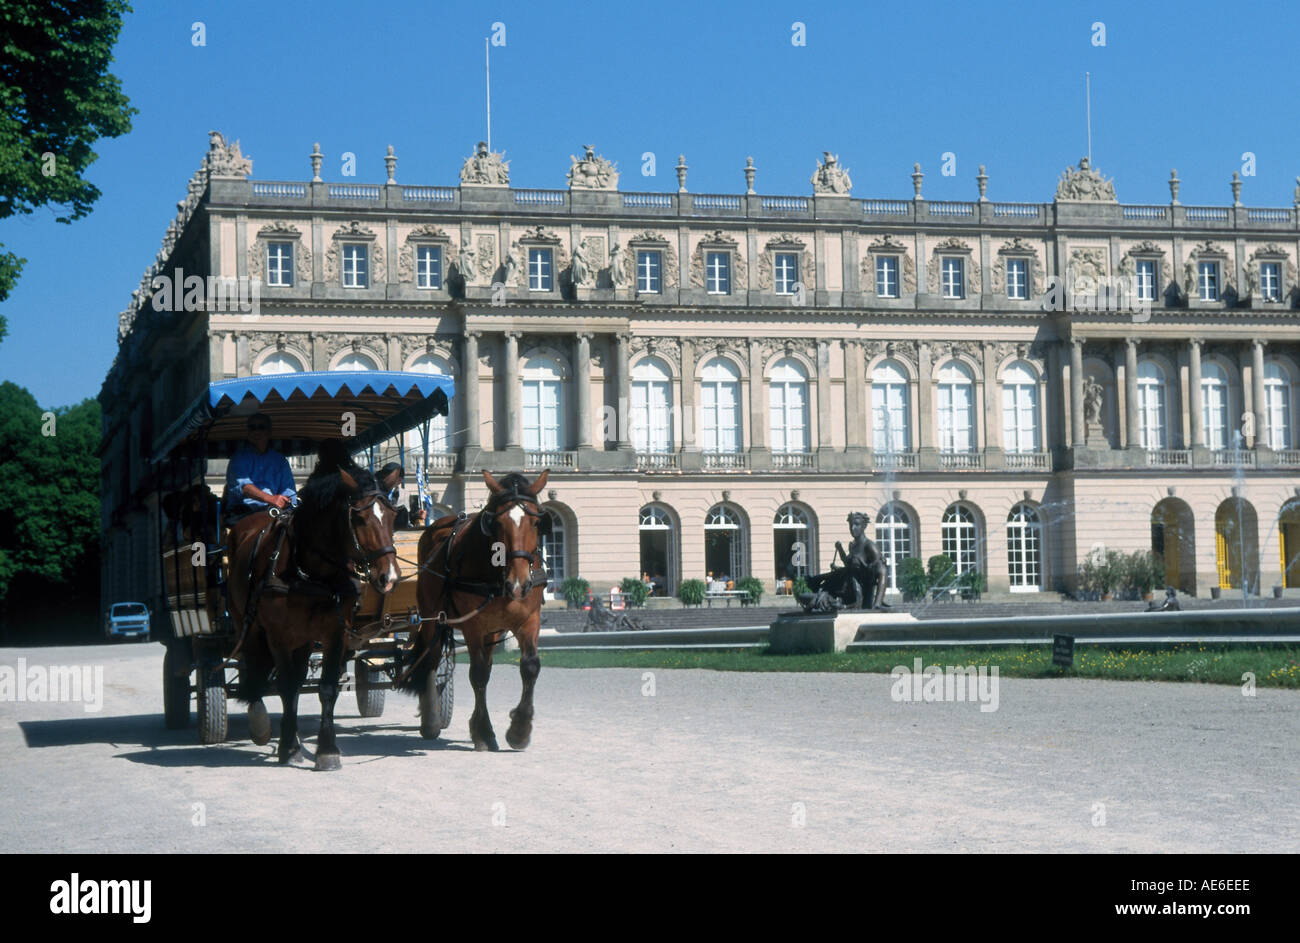 Horsedrawn carriage in front of castle, Herrenchiemsee Castle, Herreninsel, Bavaria, Germany - Stock Image